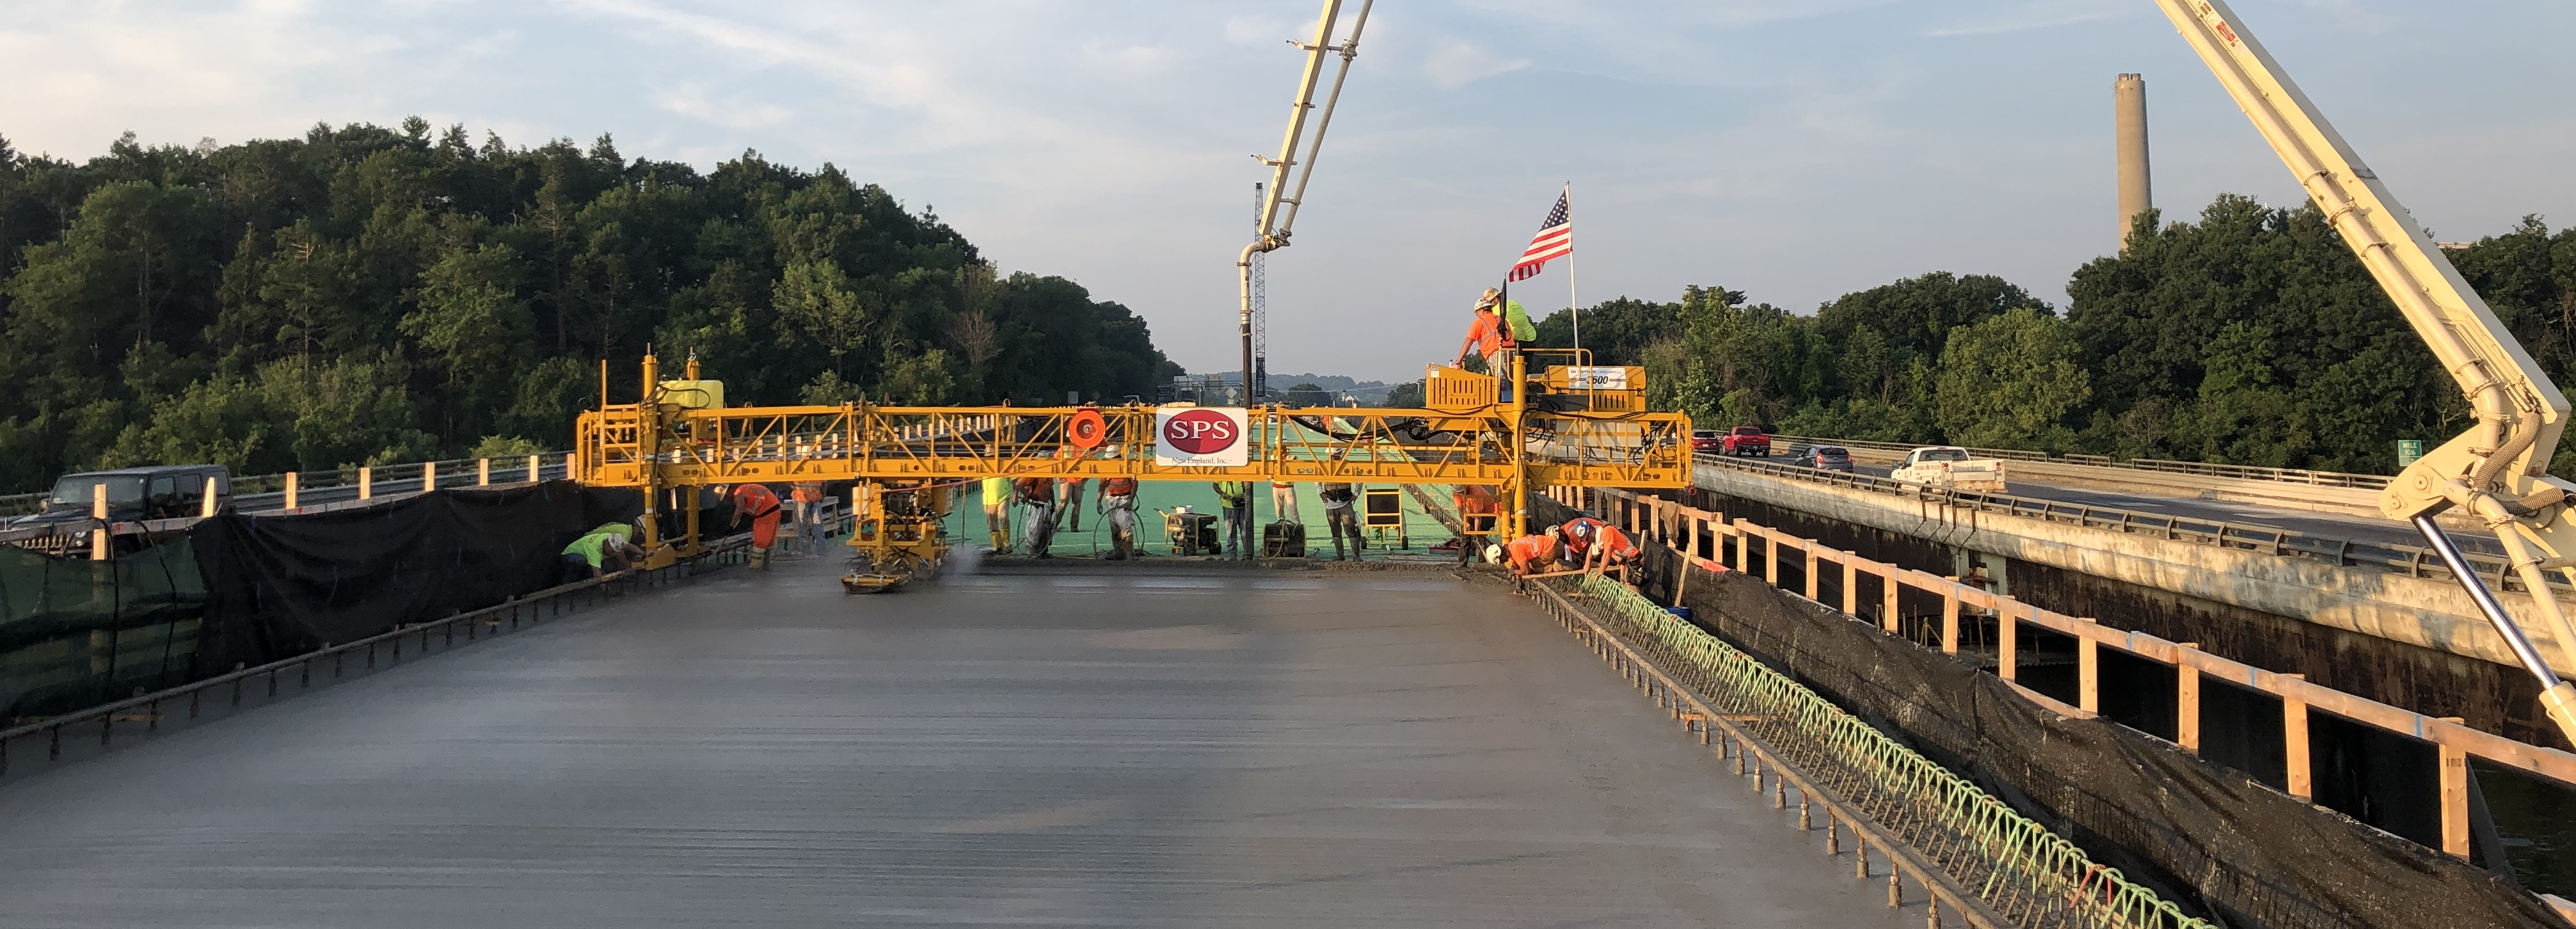 I-495 Bridge Replacement | Haverhill, MA